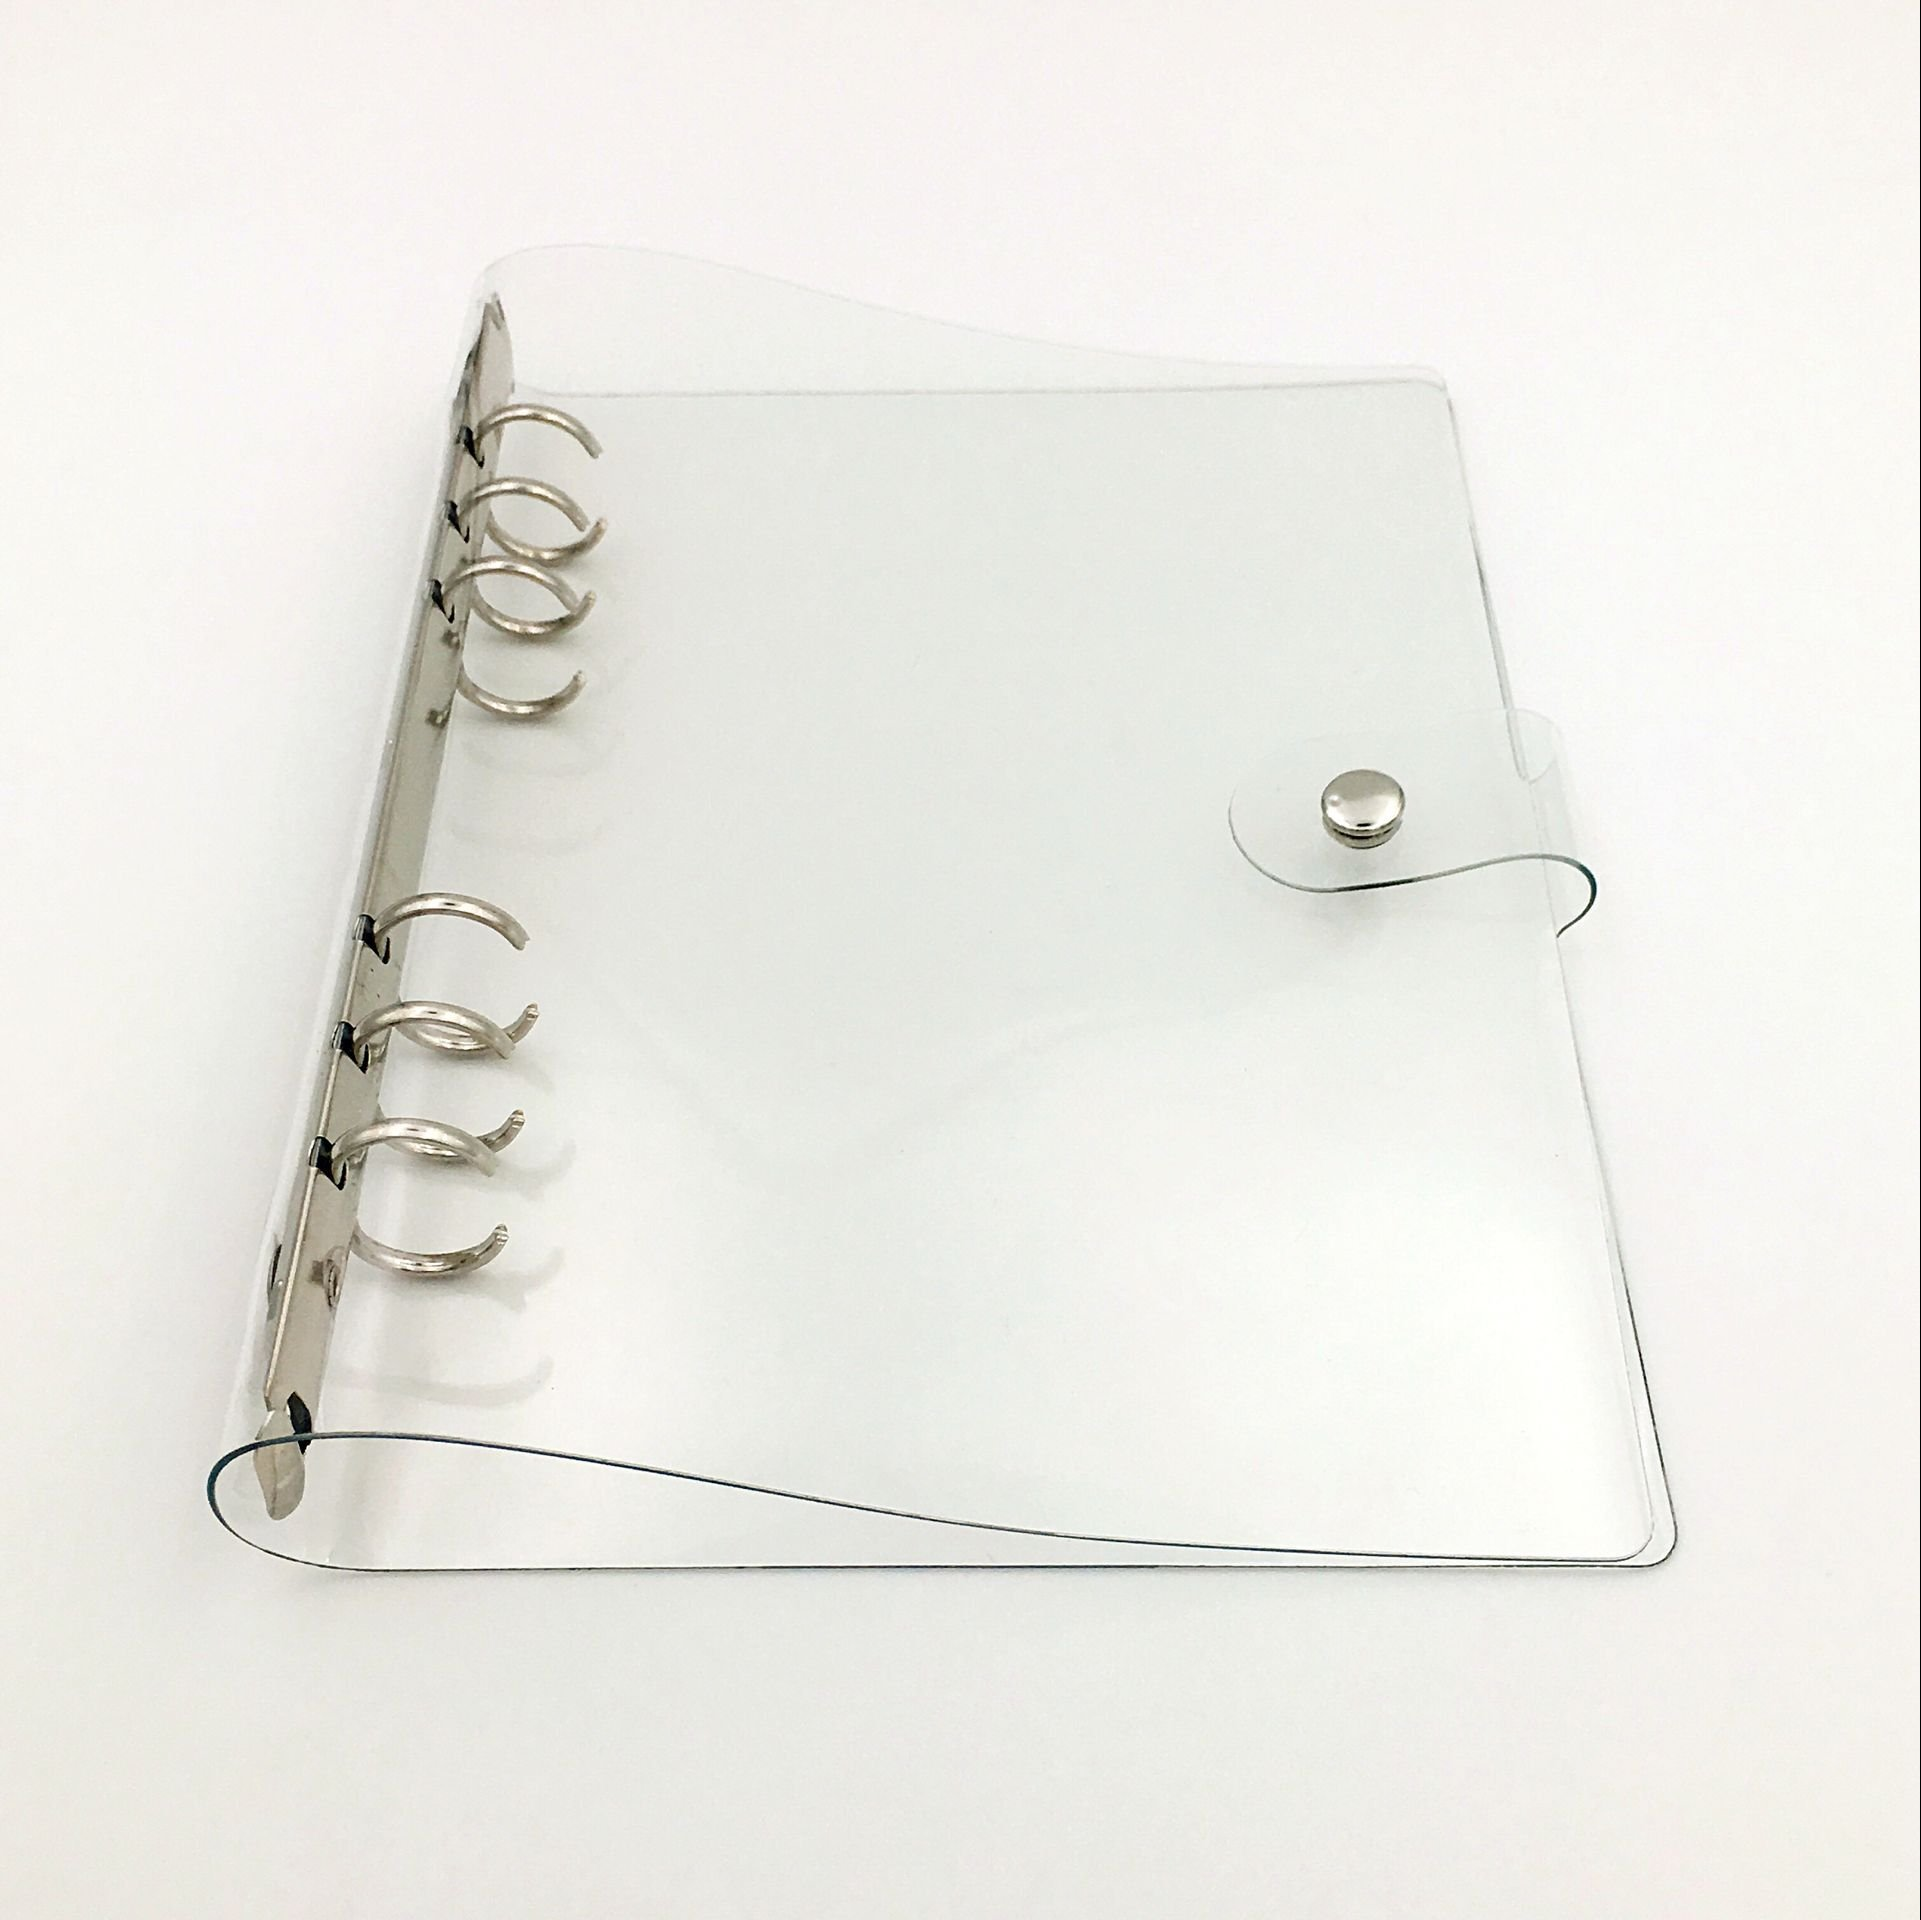 Chris.W 1Pack Transparent Soft PVC 6-Ring Binder Cover w/ Snap Button Closure for Ring-Bound Planner Pages, A5 Size(Inner Paper Not Included)